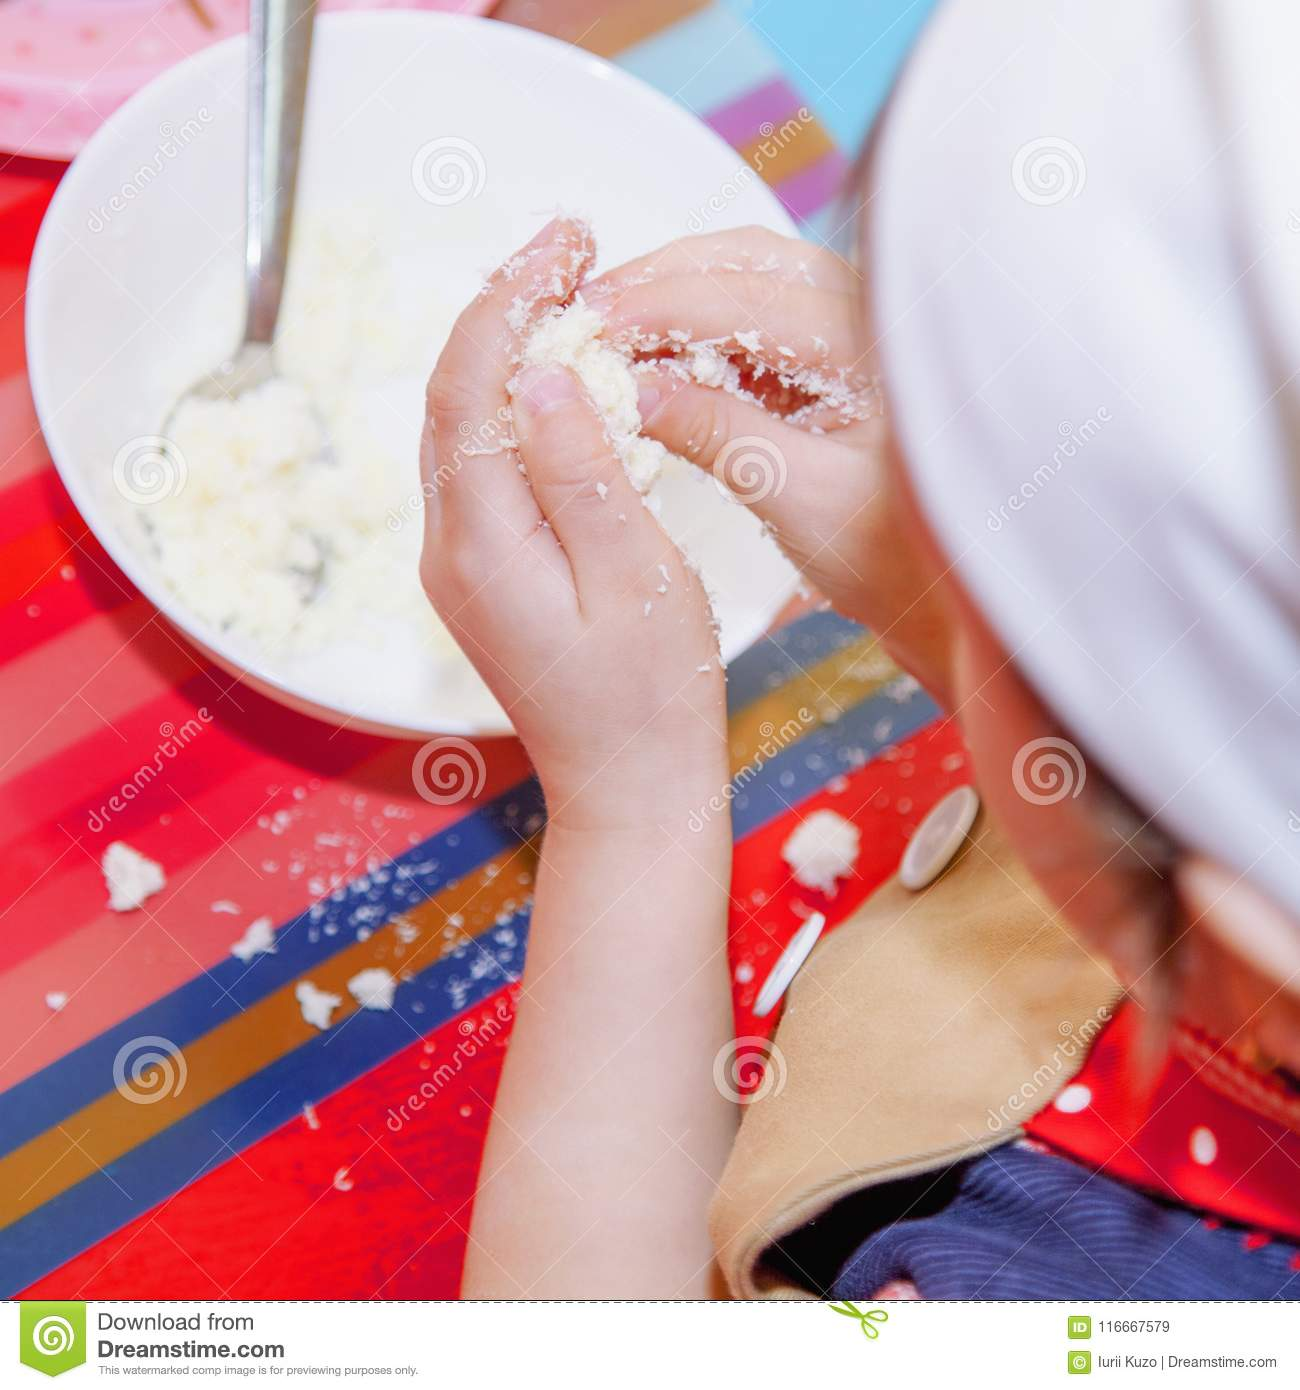 Child Girl Is Learning How To Make A Cake Humorous Photo Selective Focus On